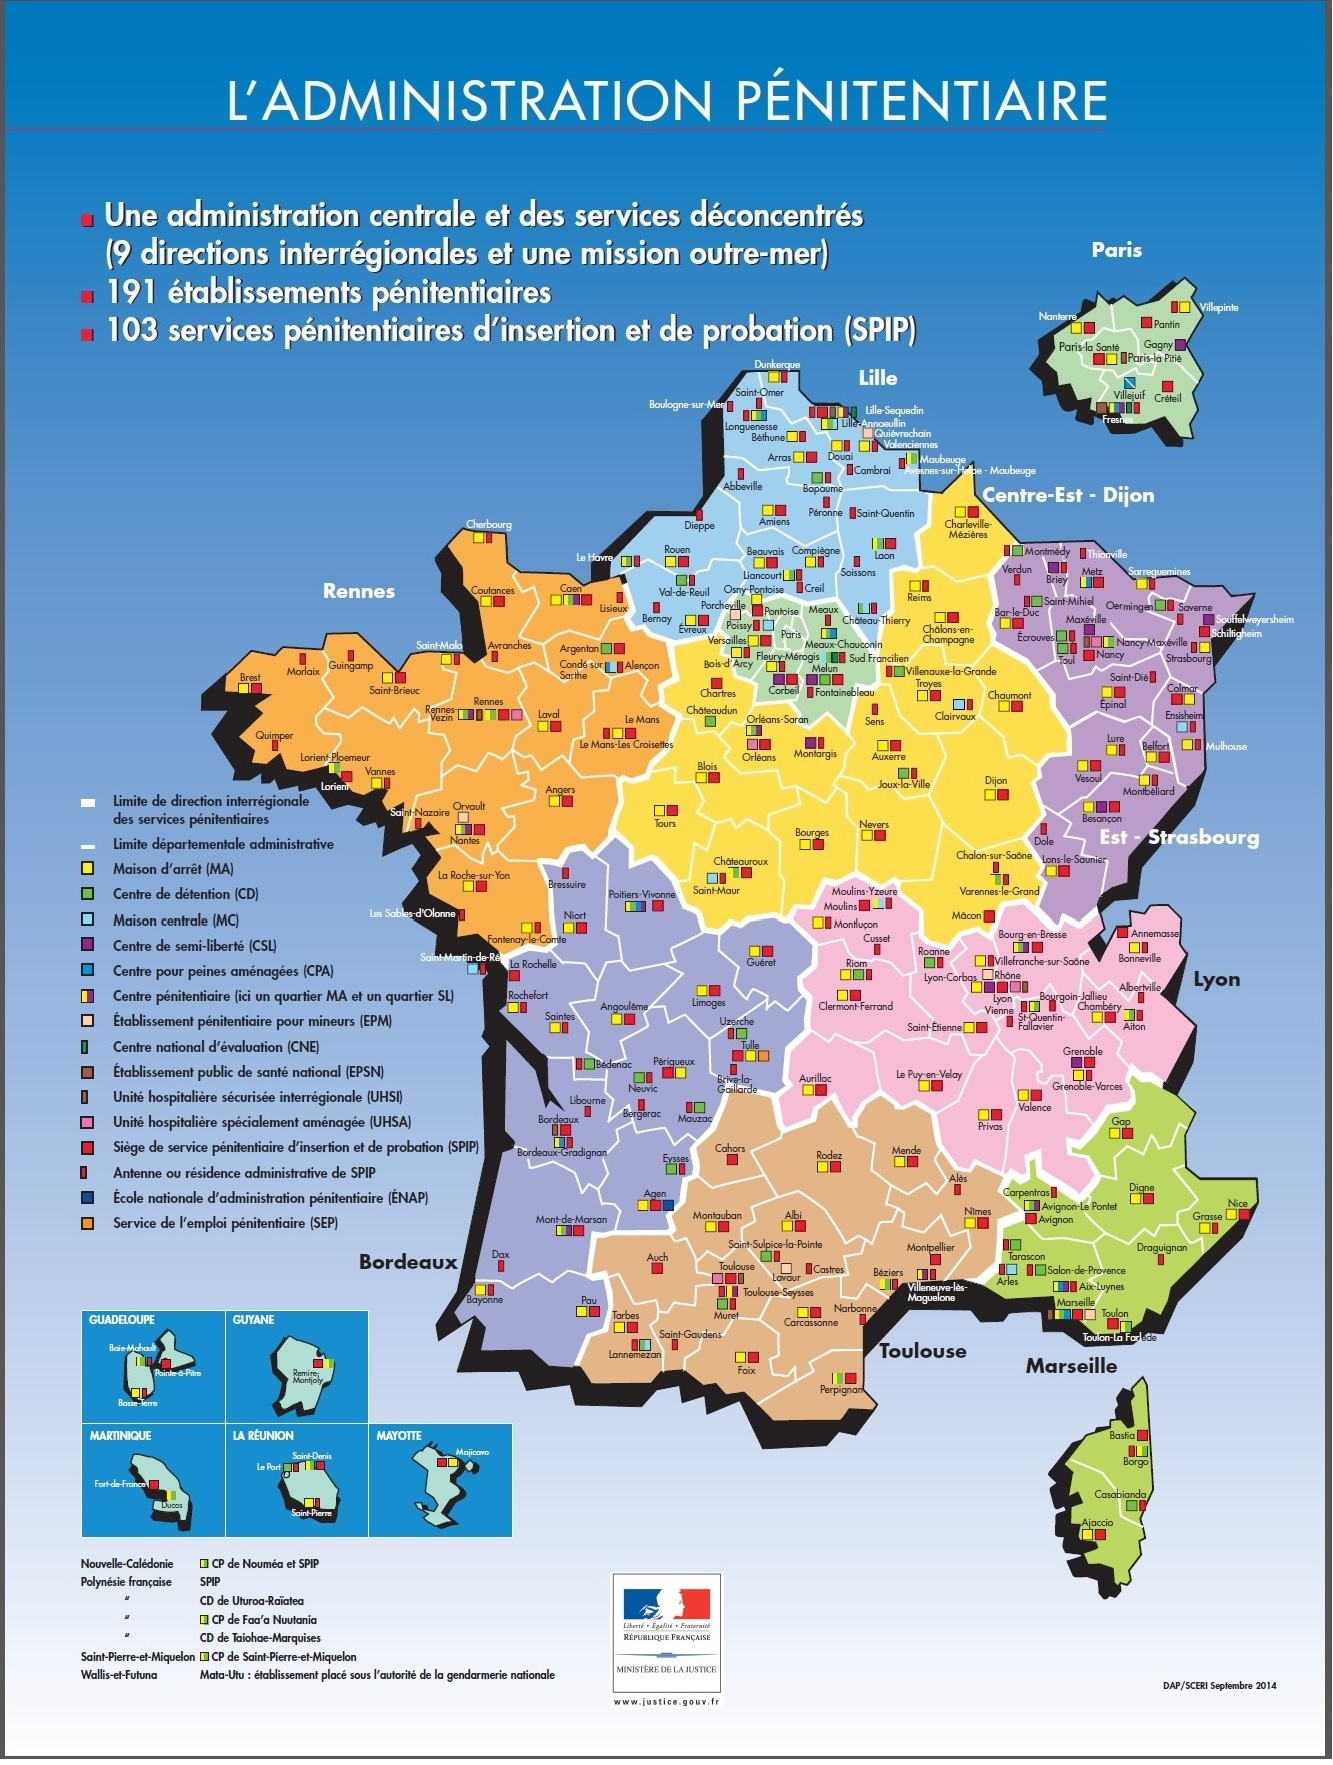 carte  u2013 la pr u00e9paration de la r u00e9insertion des detenus